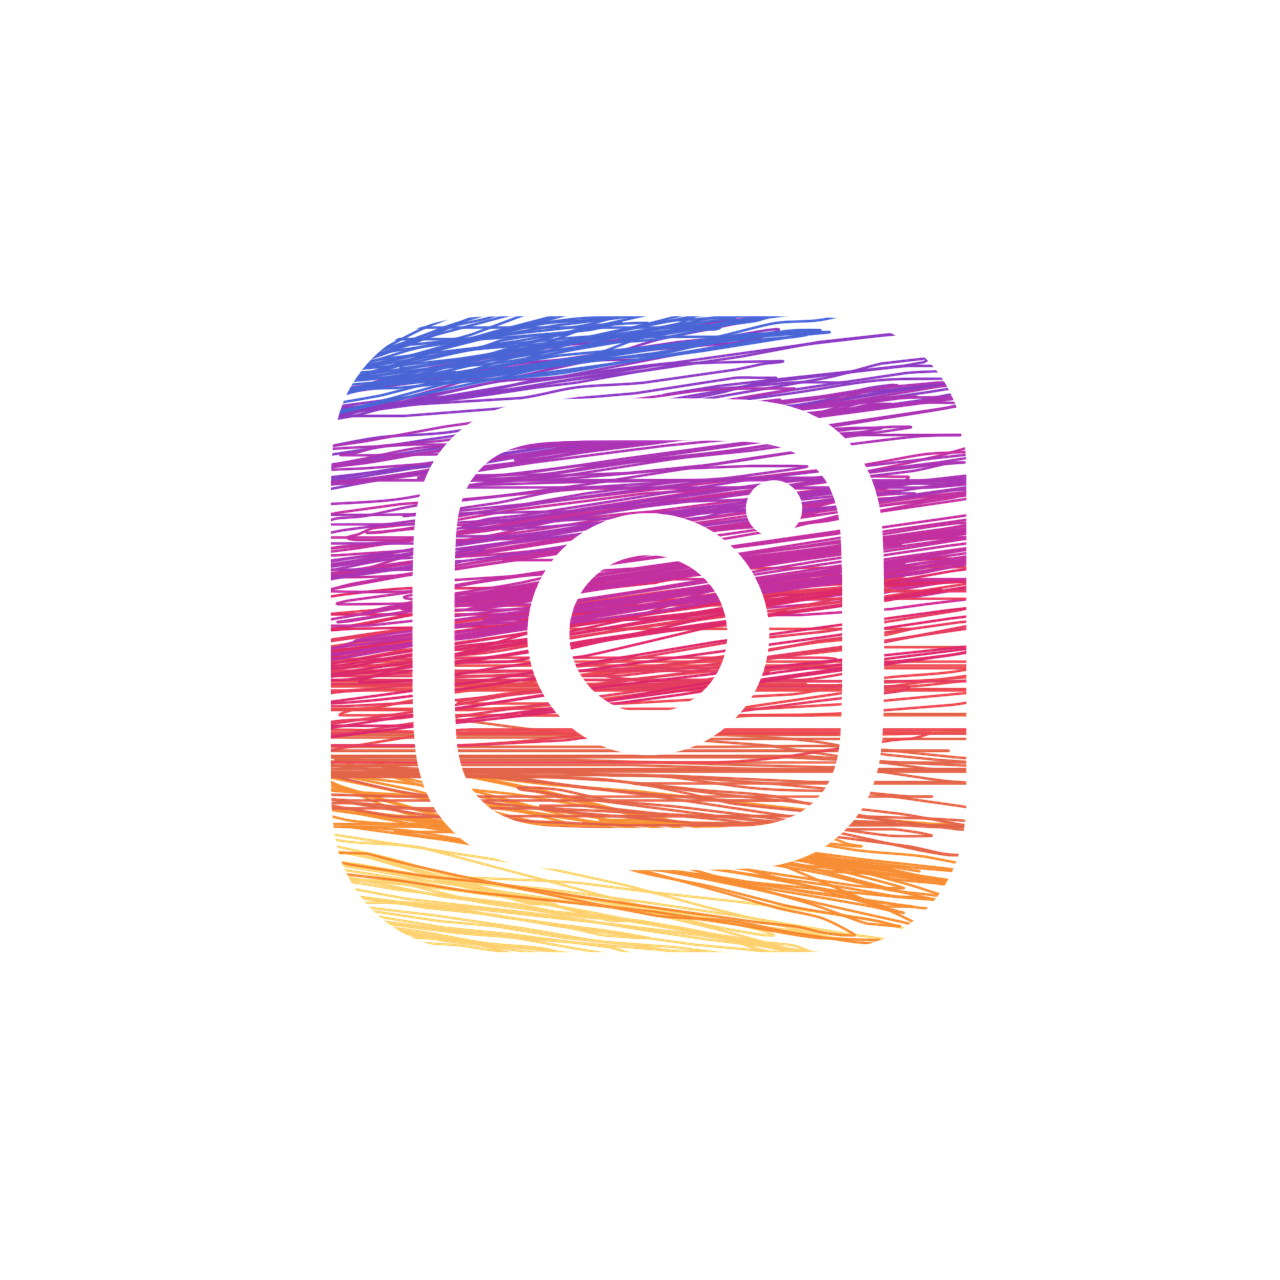 Png instagram. File icon wikimedia commons